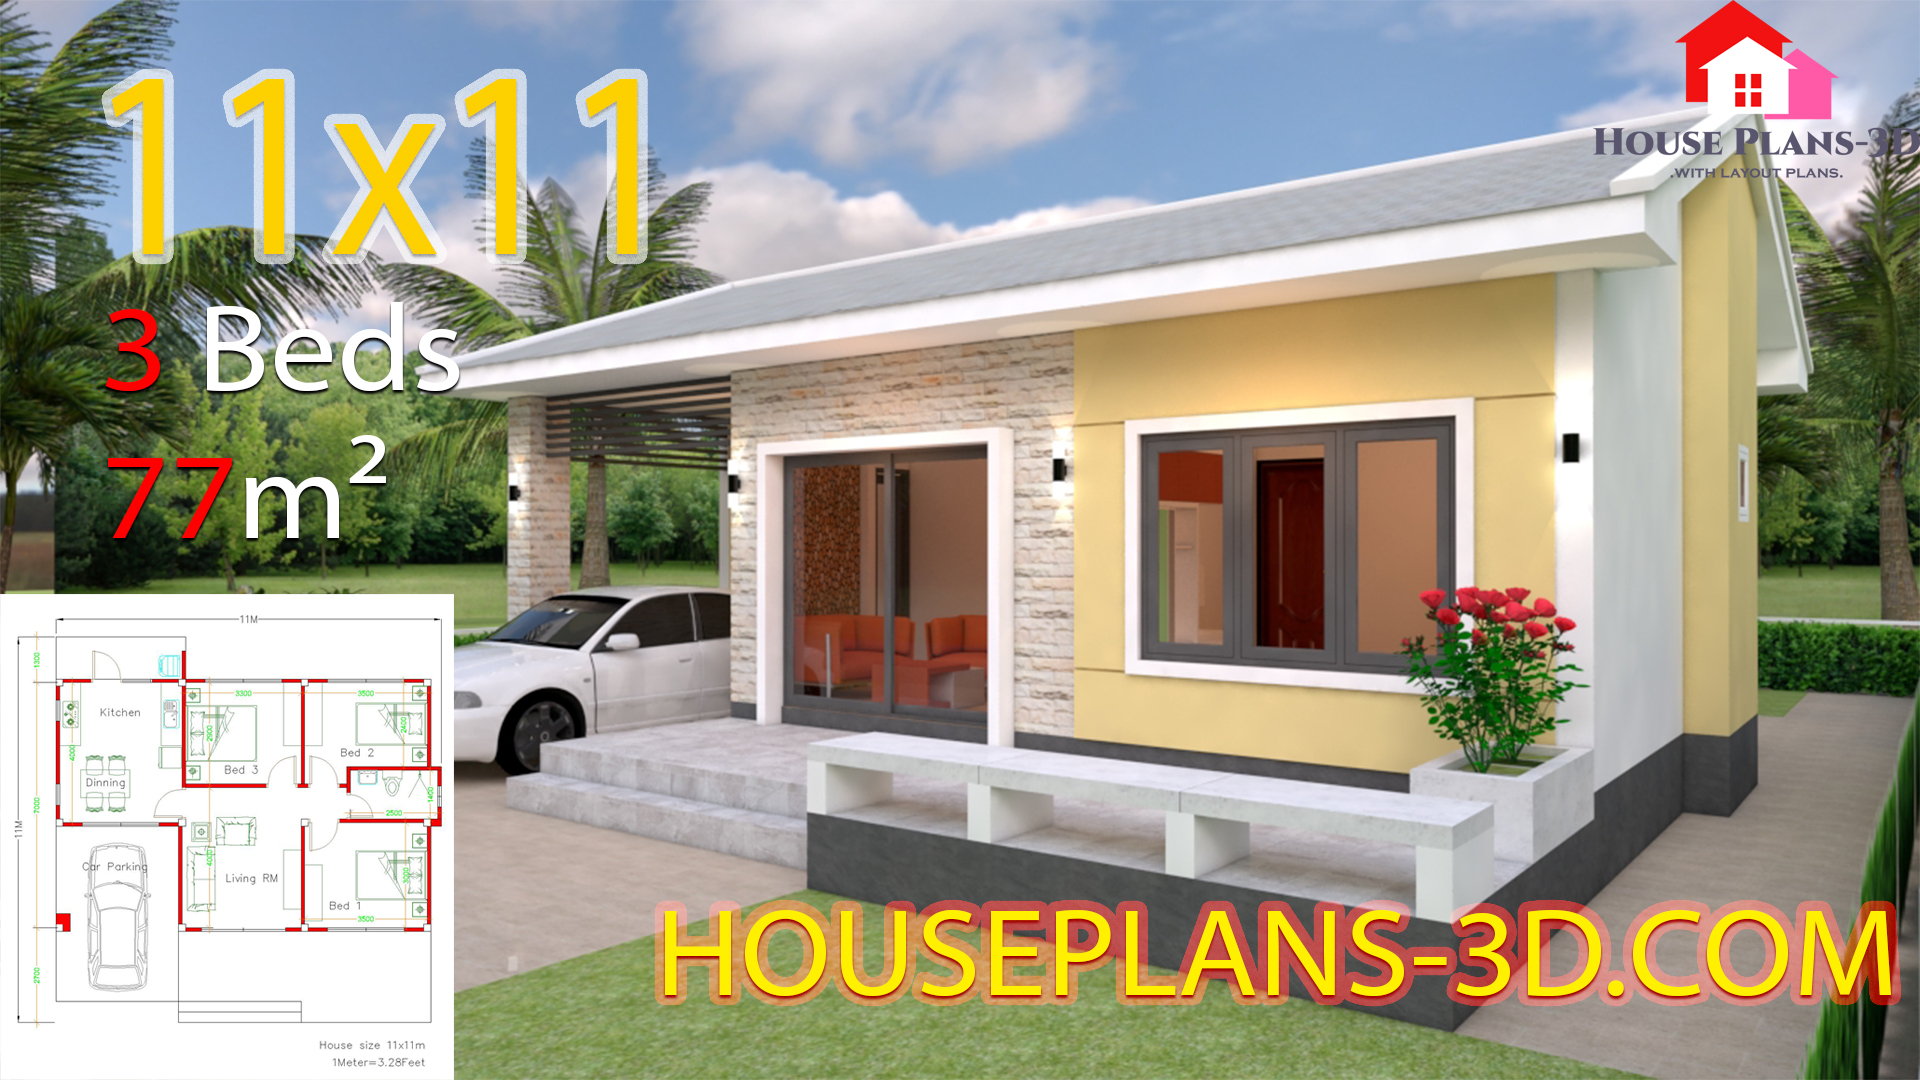 Simple House Design Plans 11x11 with 3 Bedrooms - House ...